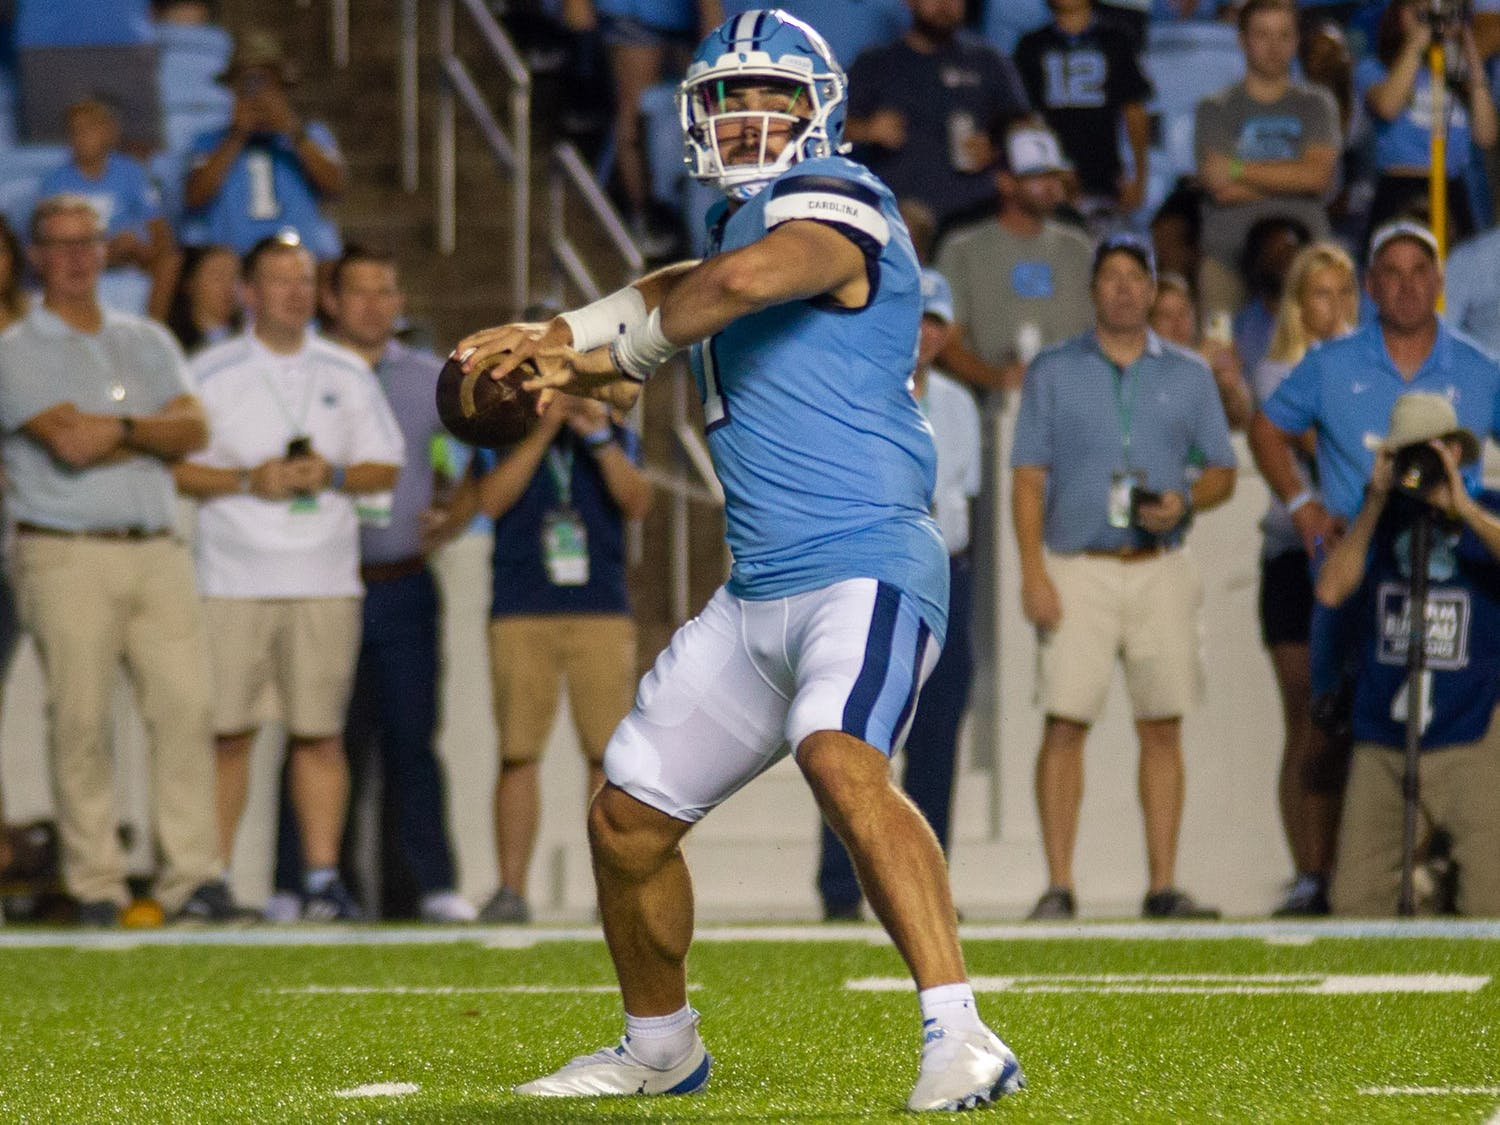 UNC junior quarterback Sam Howell (7) prepares to launch the ball during the Tar Heels' home football matchup in Kenan Memorial Stadium on Sept. 18, 2021, against the University of Virginia Cavaliers. The Tar Heels won 59-39.